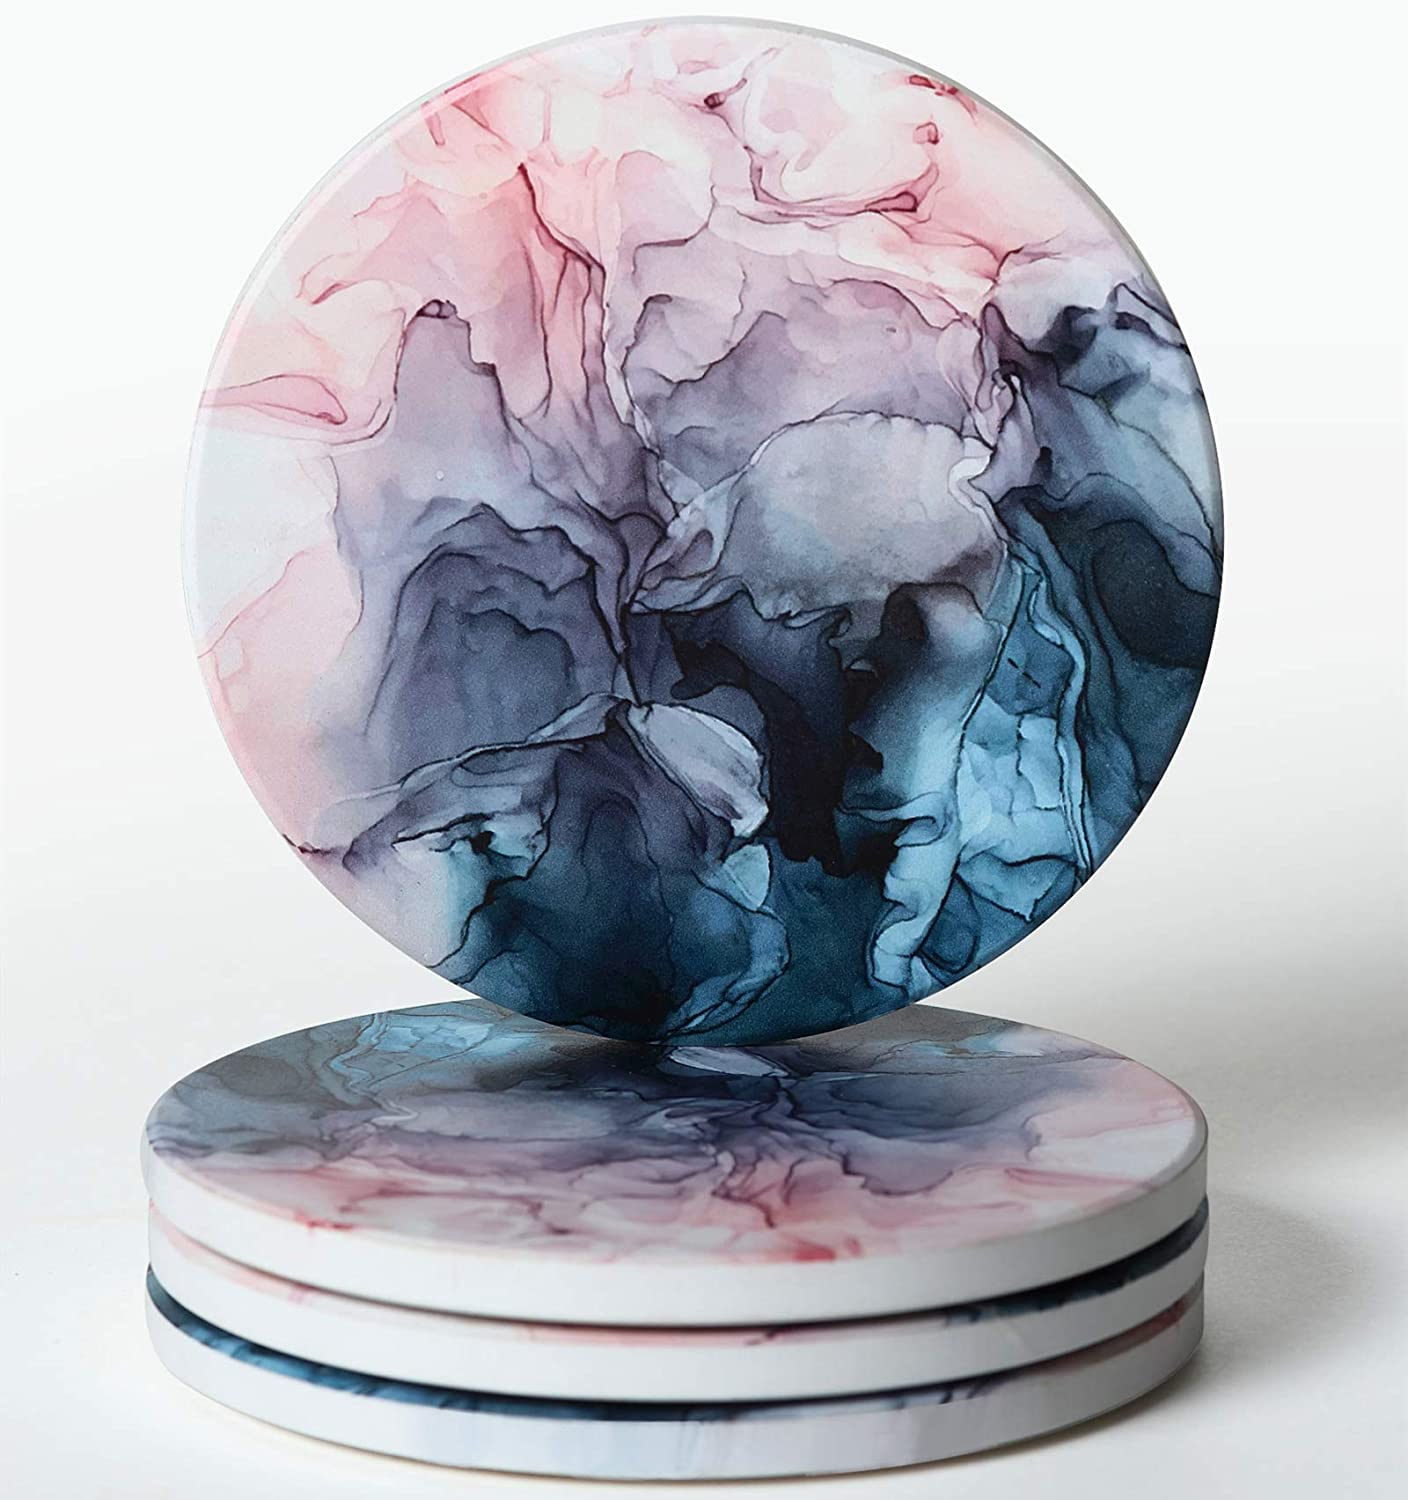 RoomTalks Pink Blue Marble Coasters for Drinks Absorbent 4 PCS Modern Ceramic Stone Coaster with Cork Back Unique Cute Coasters for Wooden/Coffee Table Housewarming Gift (Blush, 4 Pieces)